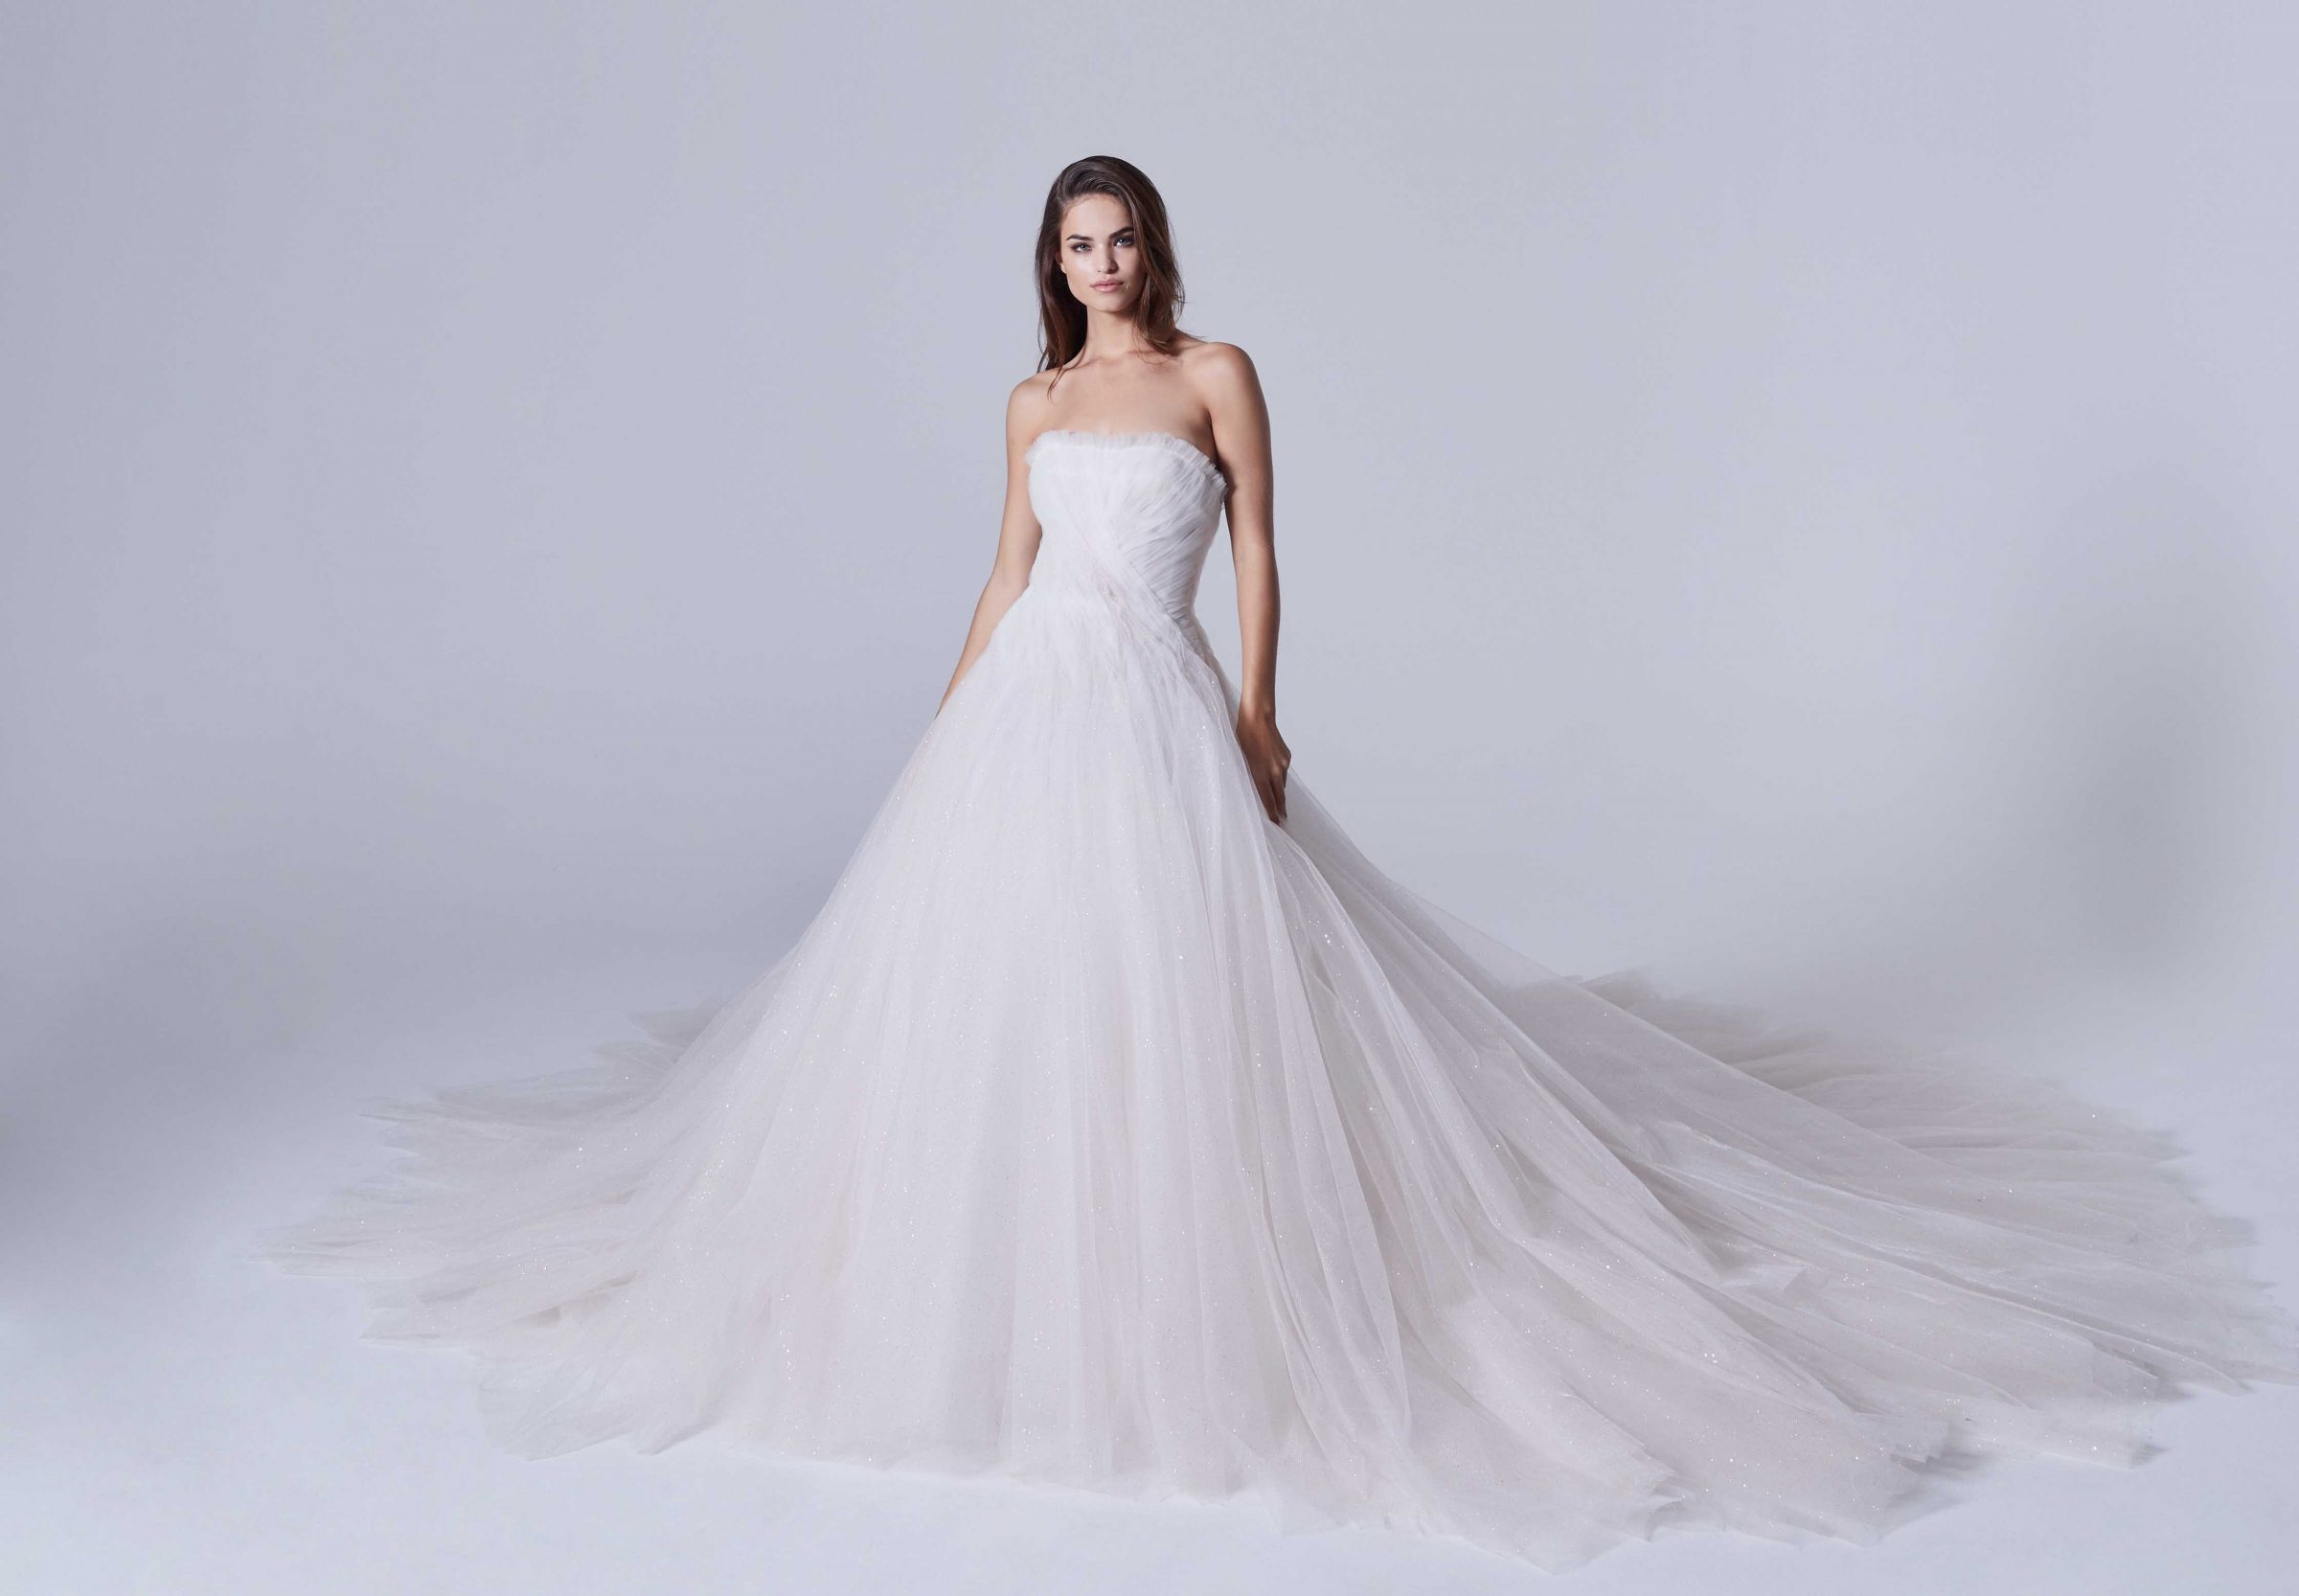 Strapless wedding ballgown made of sparkly tulle